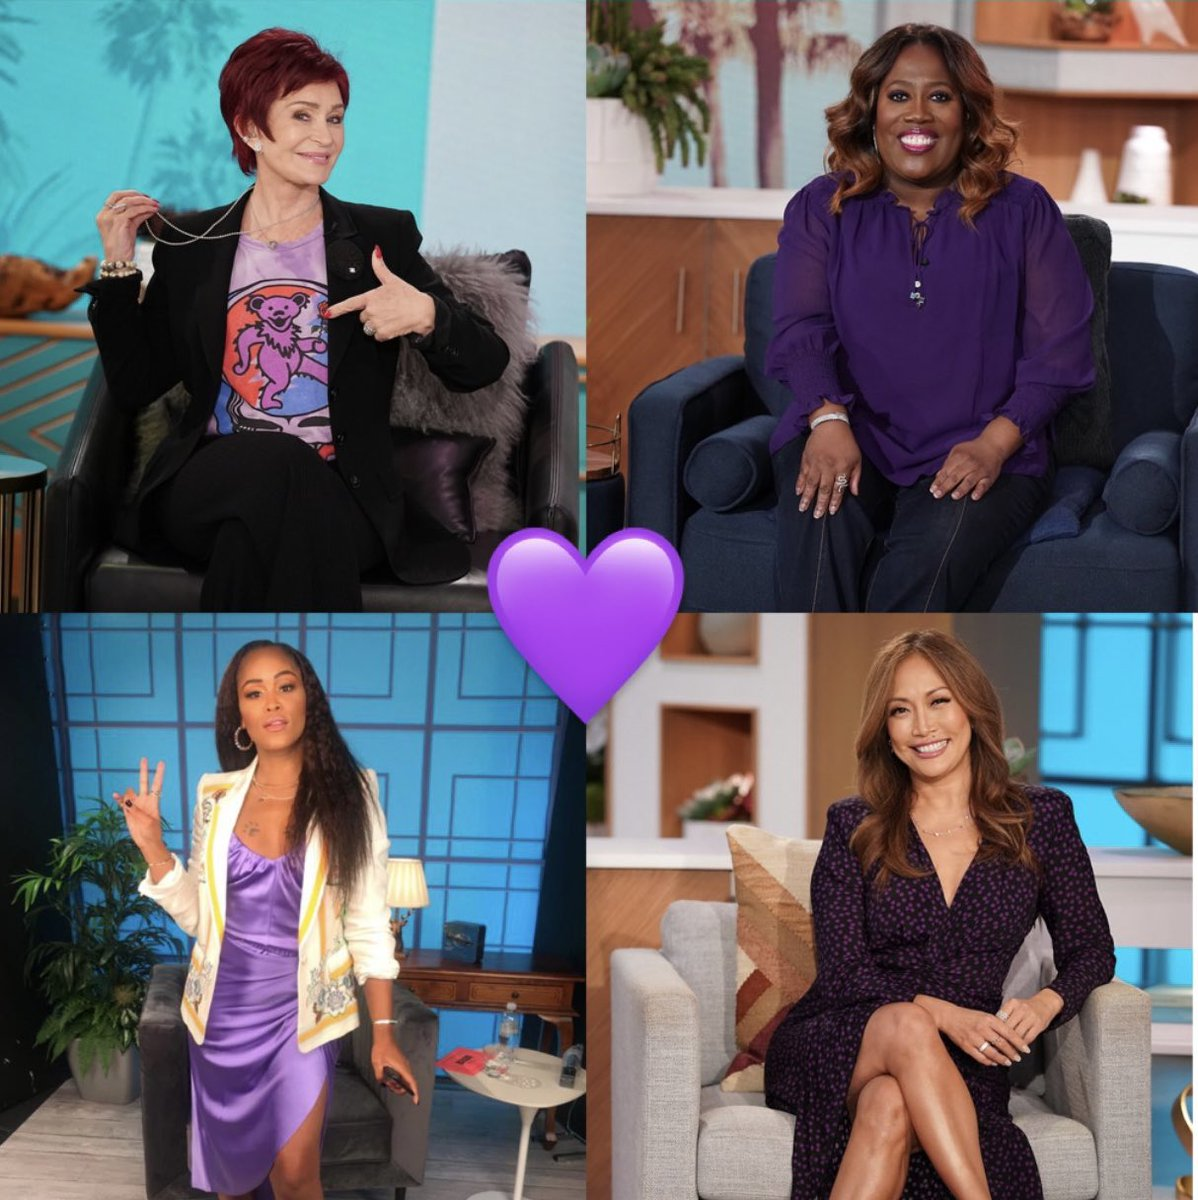 Our ladies are wearing purple in support of taking a stand against bullying for #SpiritDay! #TheTalk @glaad